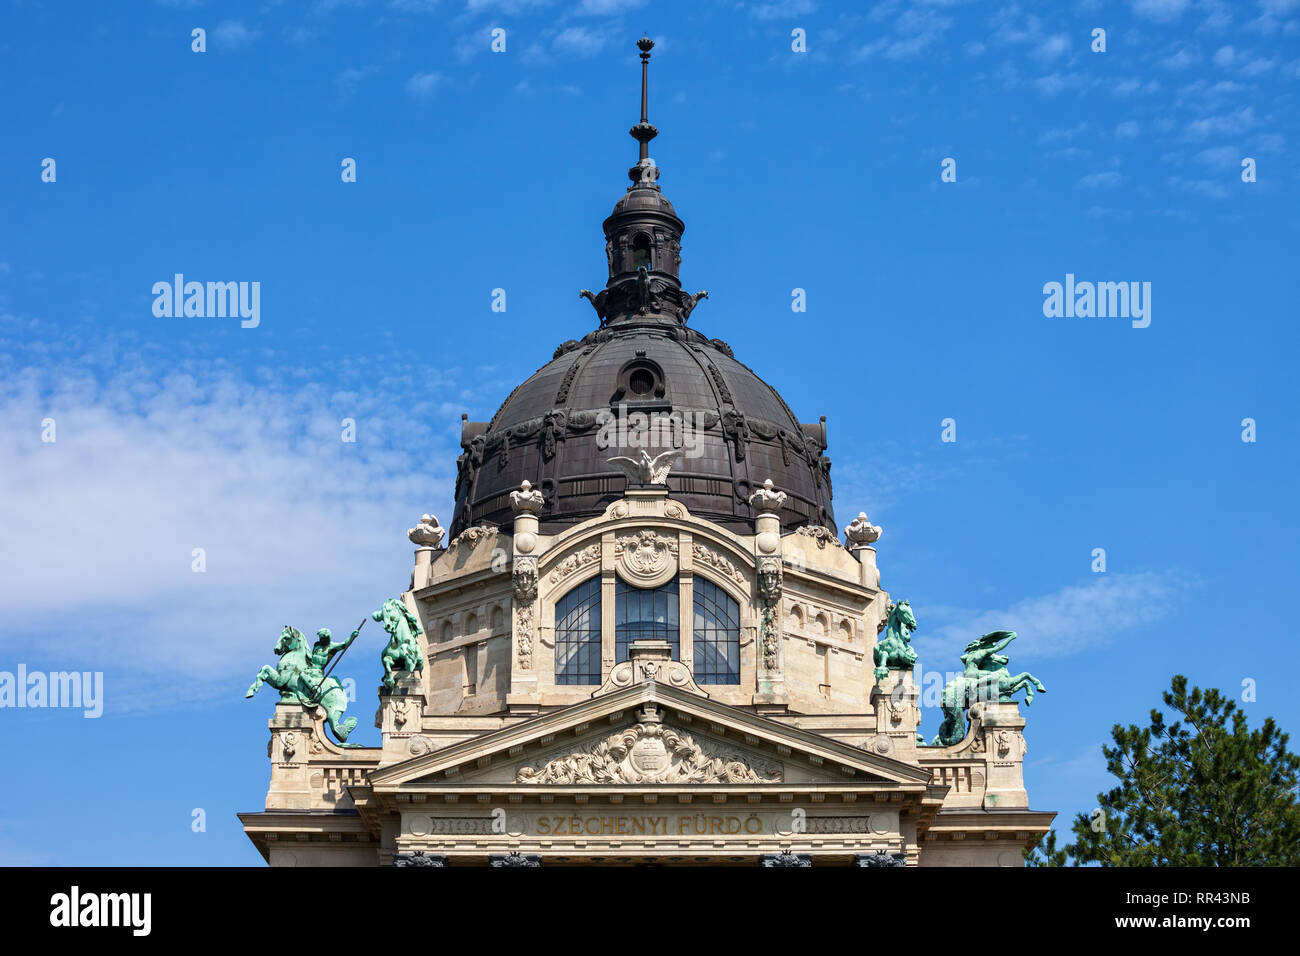 Dome and pediment of Szechenyi Thermal Baths building, Baroque Revival (Neo- Baroque) architecture in city of Budapest, Hungary - Stock Image